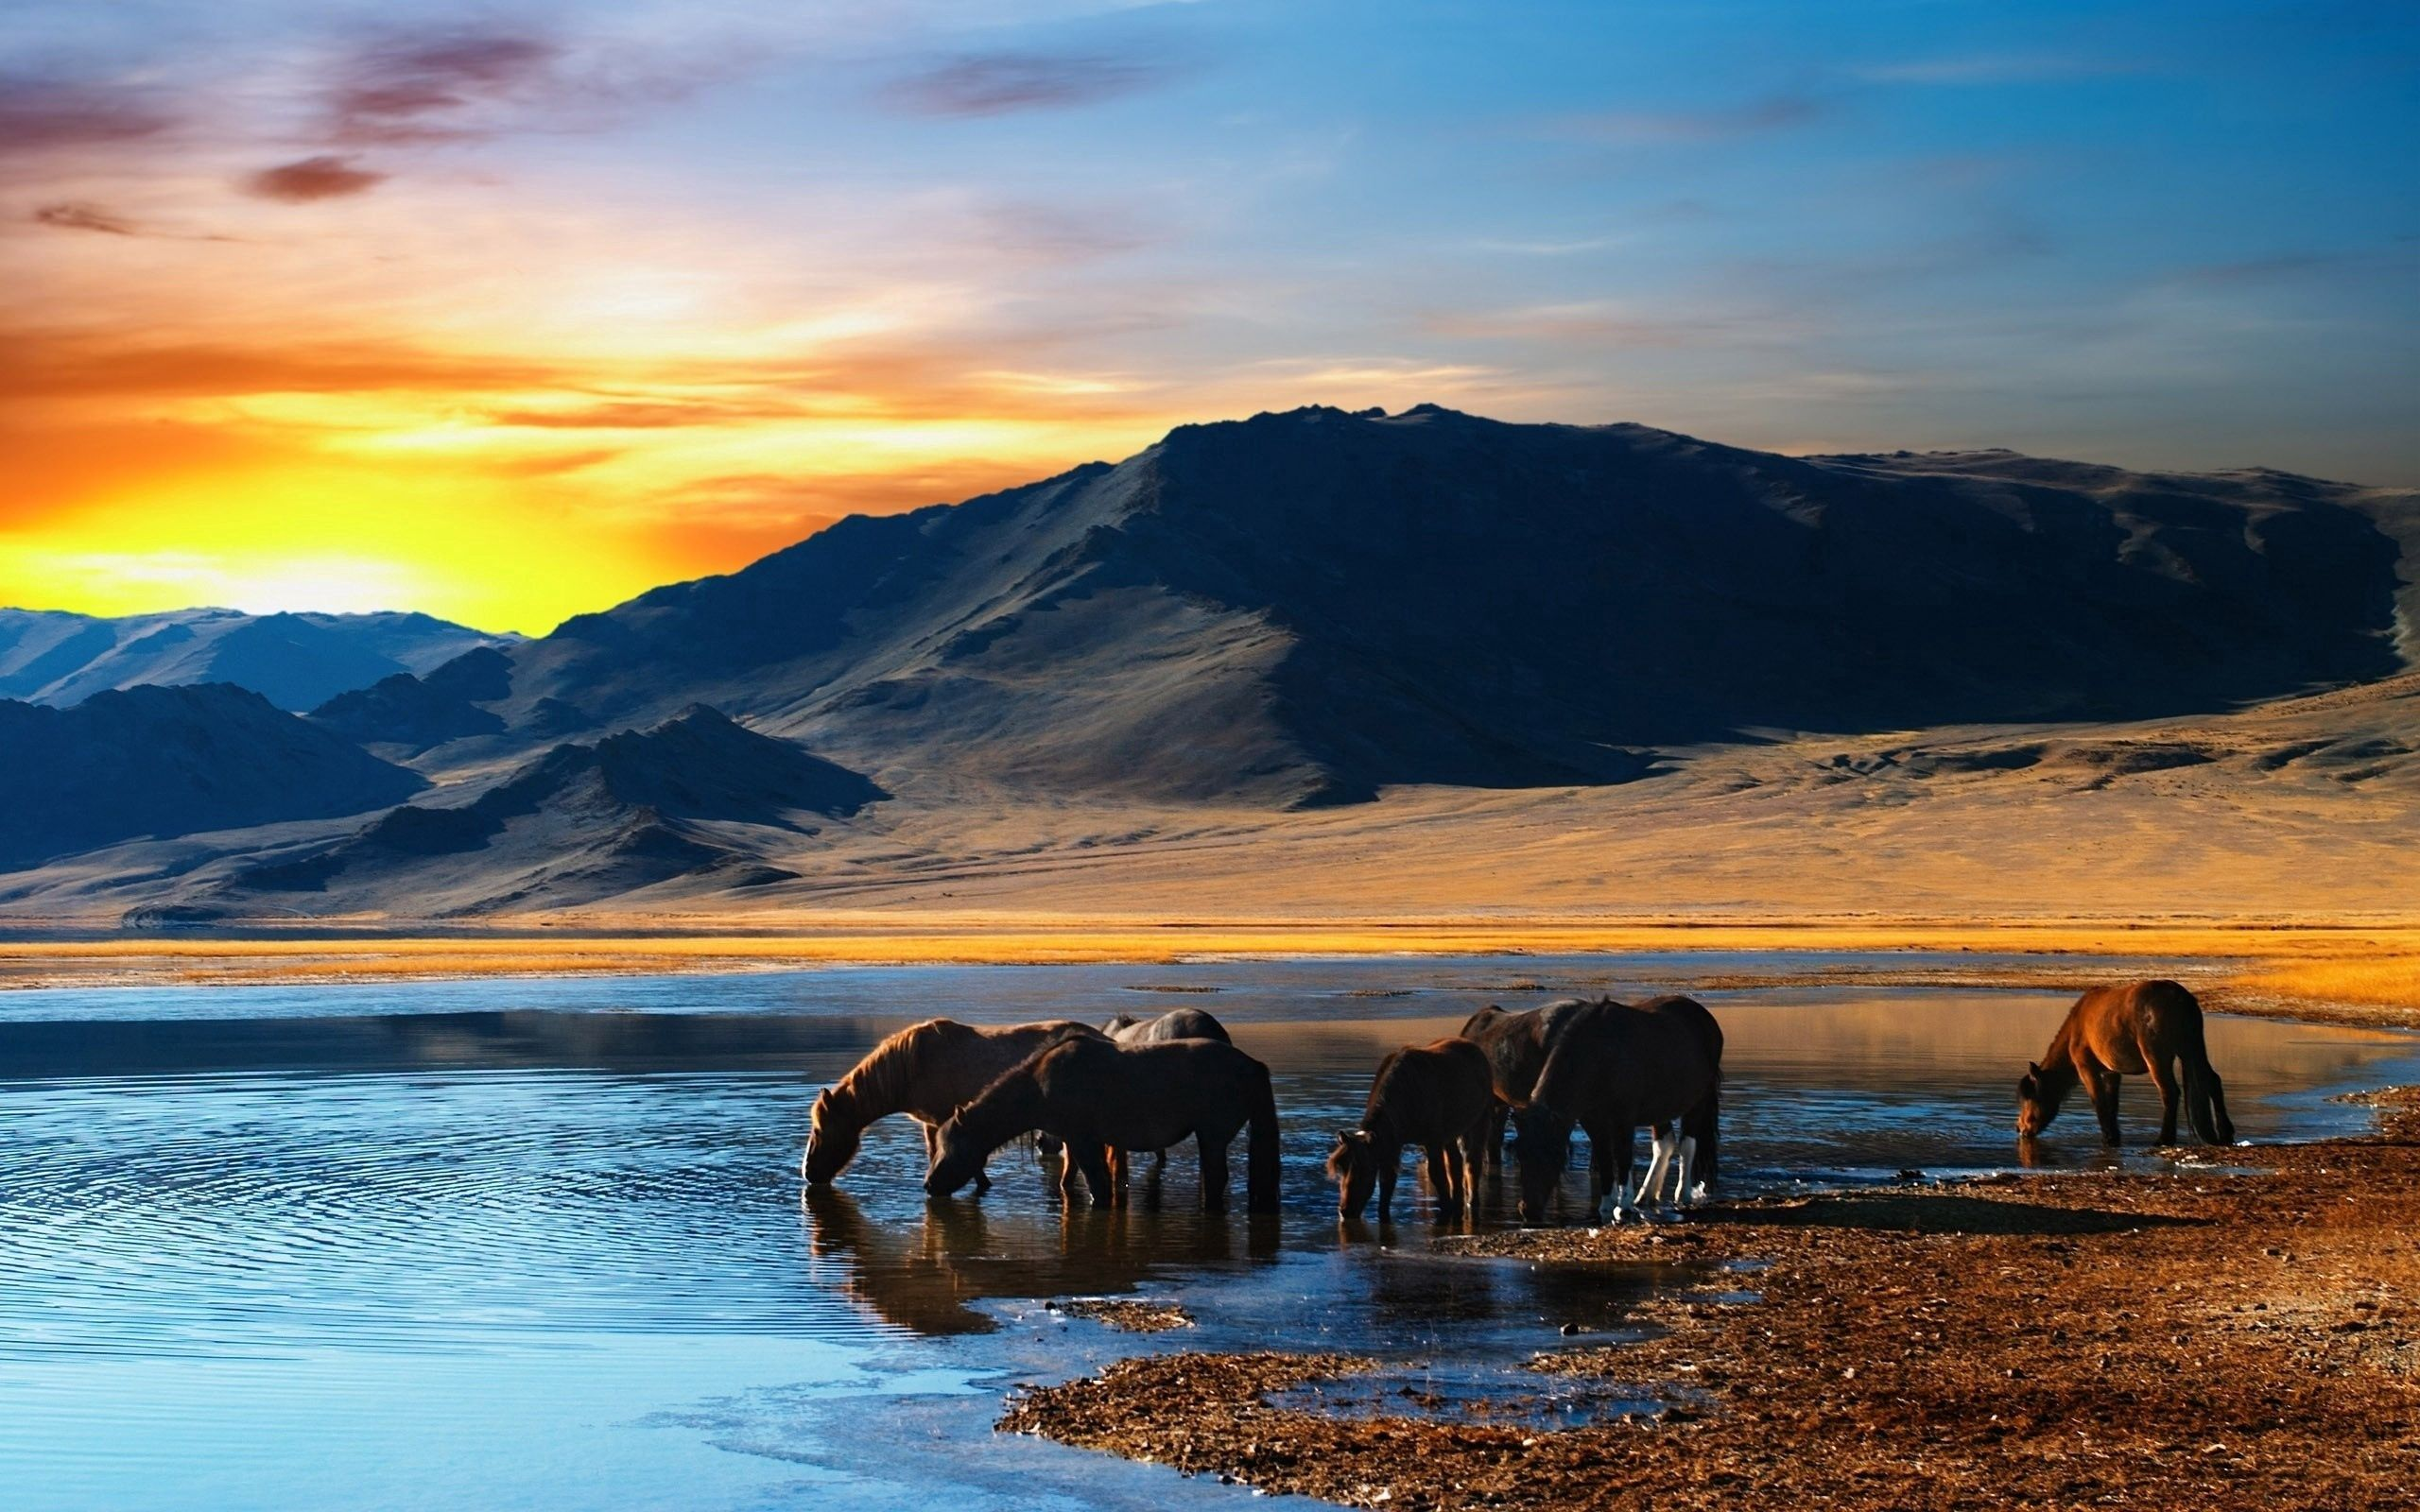 139251 download wallpaper Horses, Animals, Water, Sunset, Mountains, Shore, Bank, Drink, Herd, Thirst screensavers and pictures for free